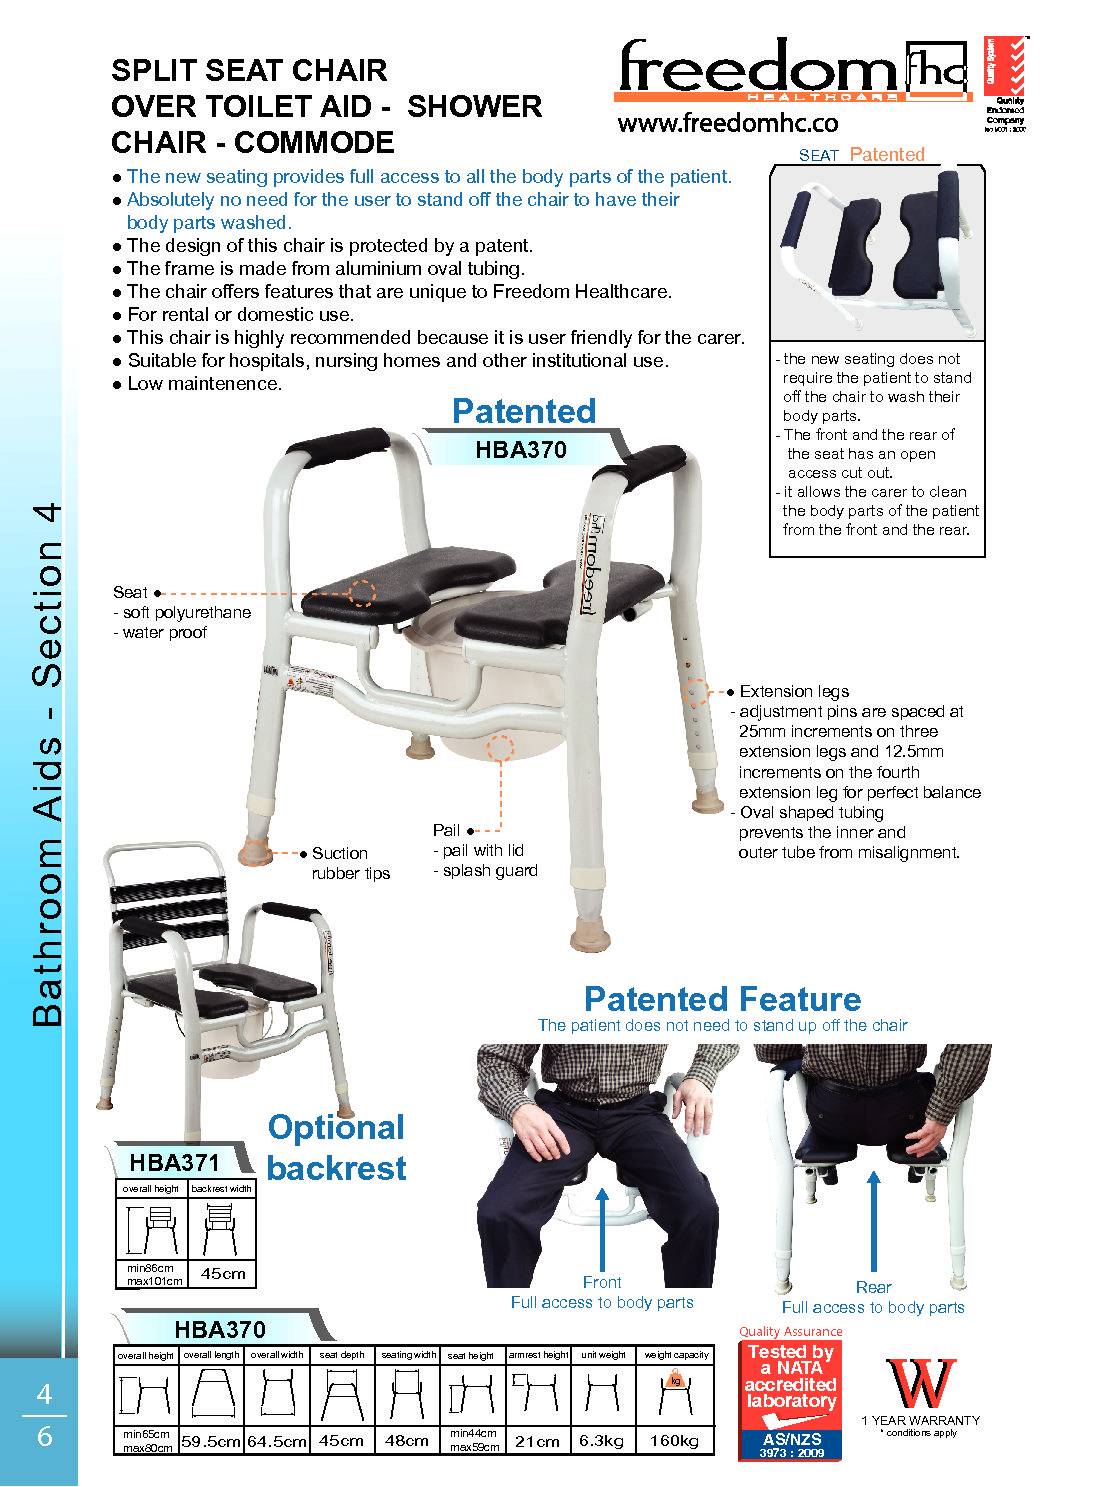 3 in 1 Over Toilet Aid, Shower chair, Commode - Balance Mobility